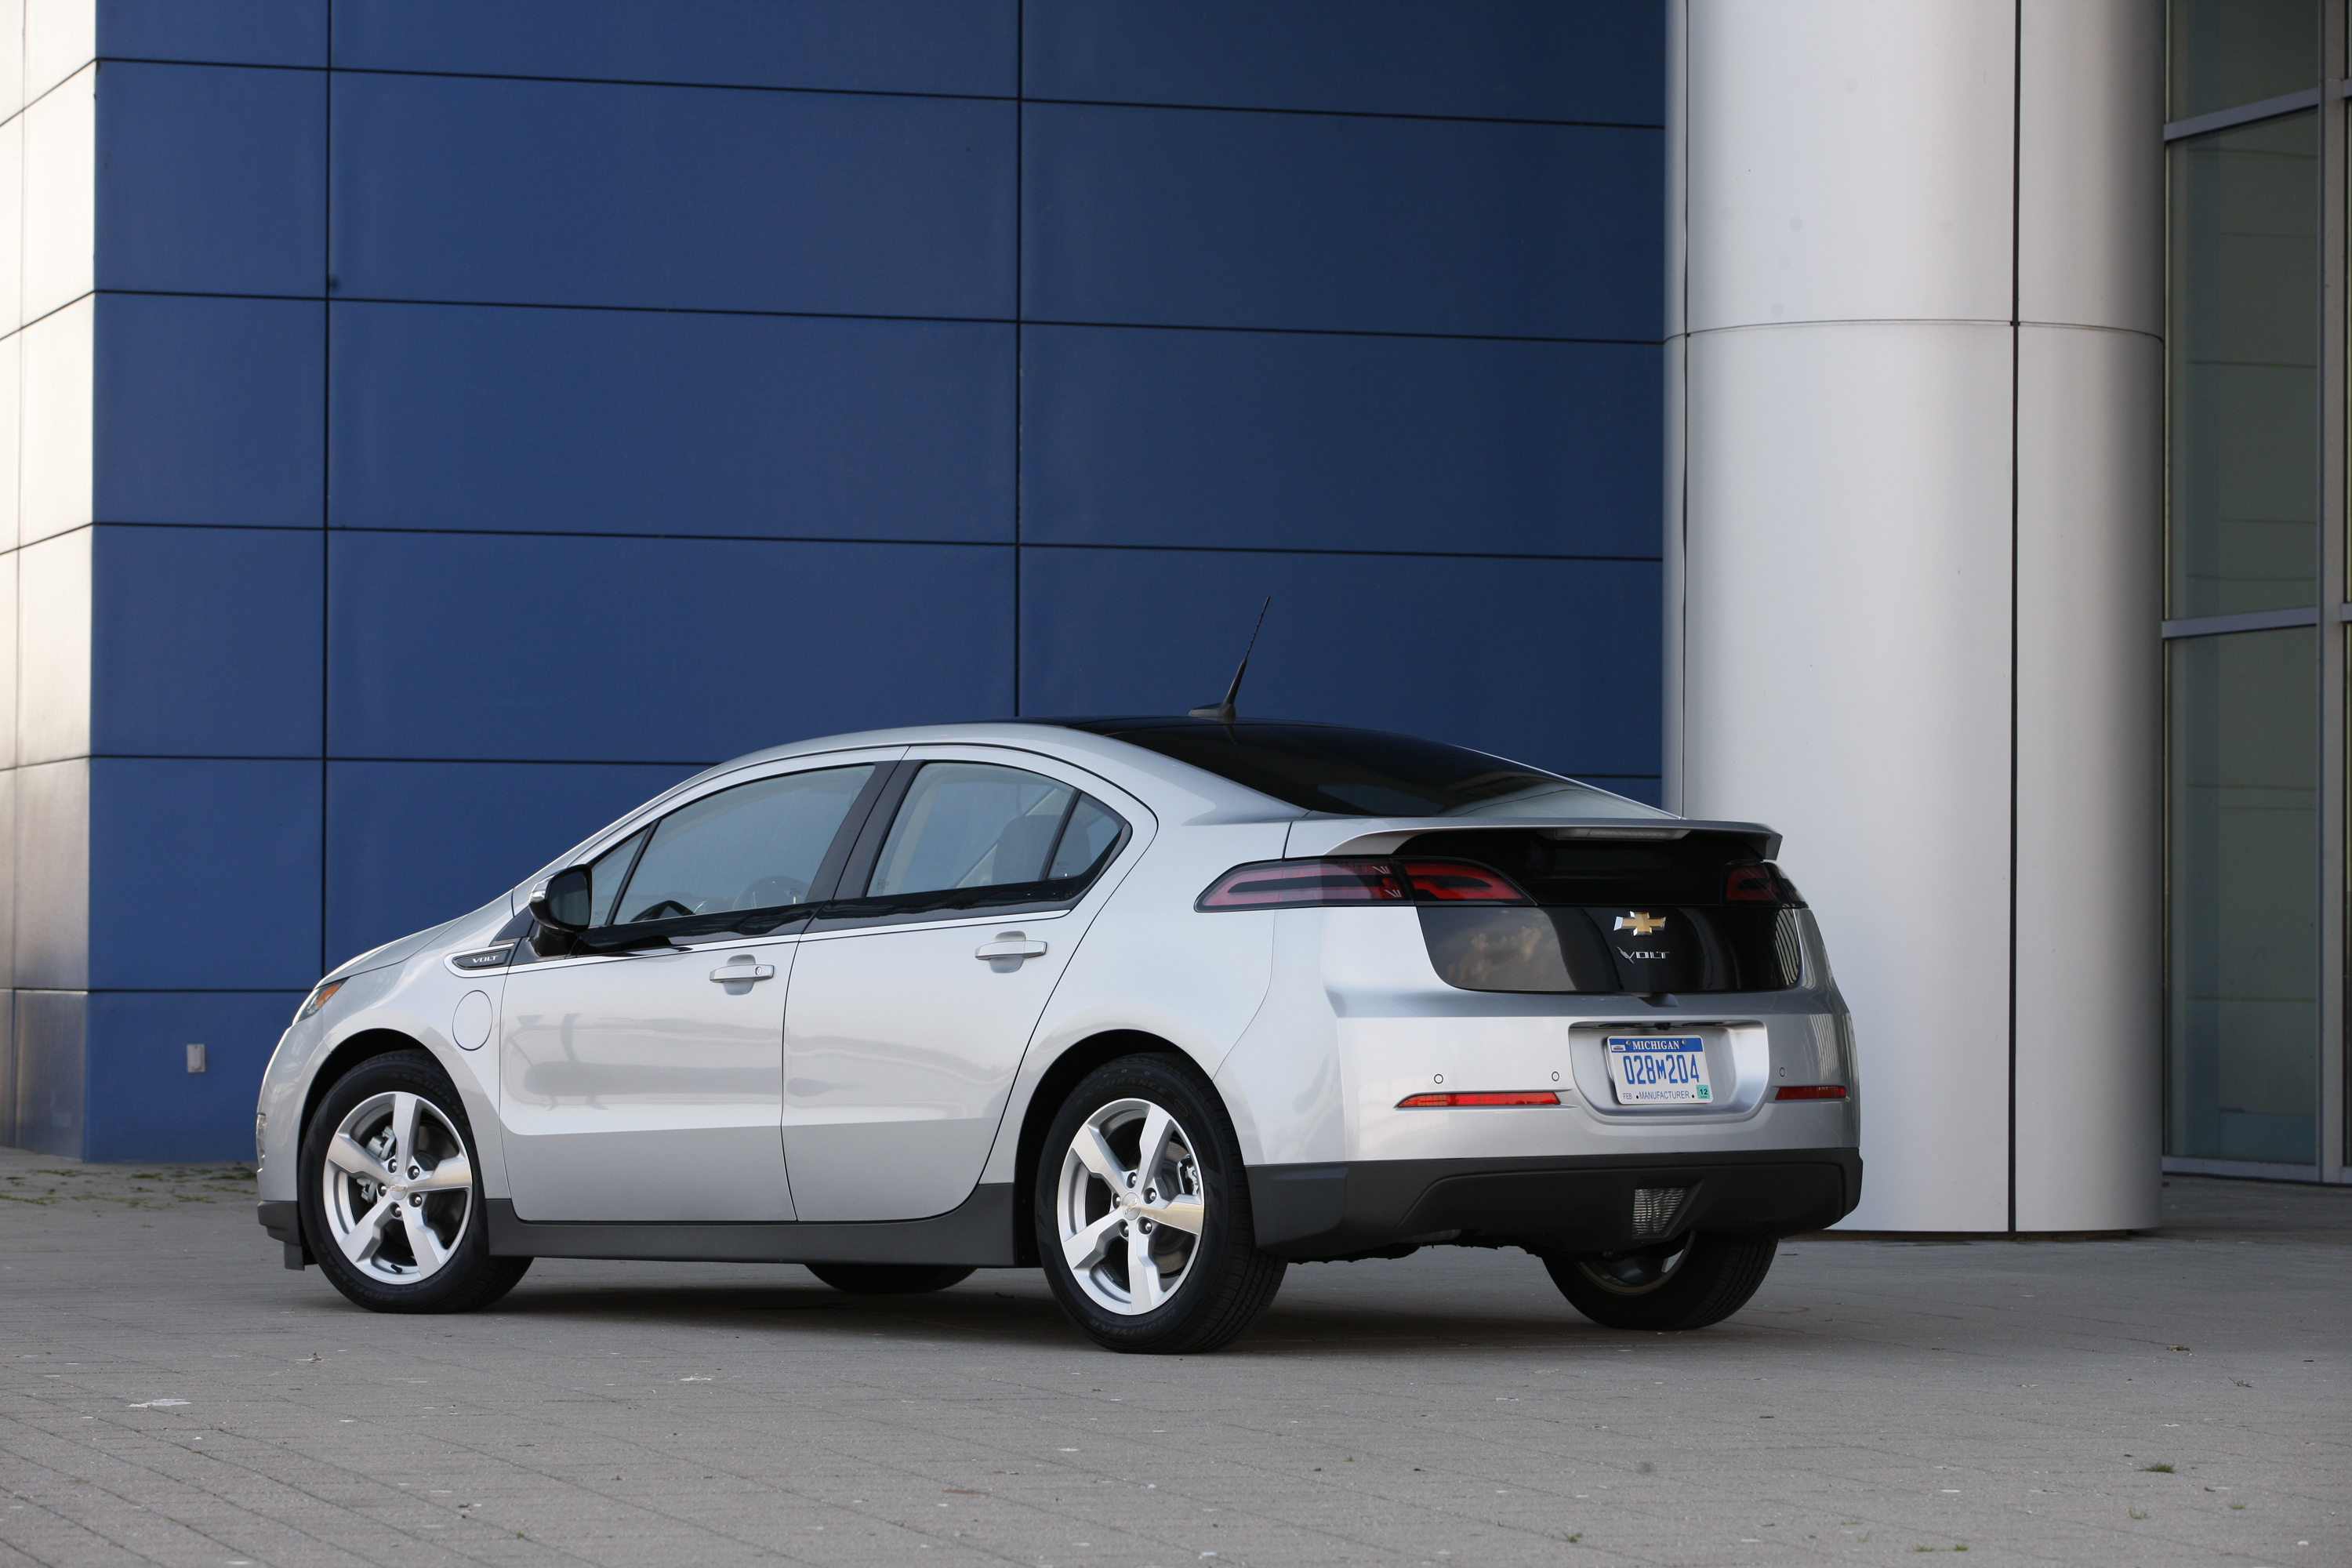 Gas Guzzlers Archives Gm Volt Chevy Electric Car Site A Market For Fuel